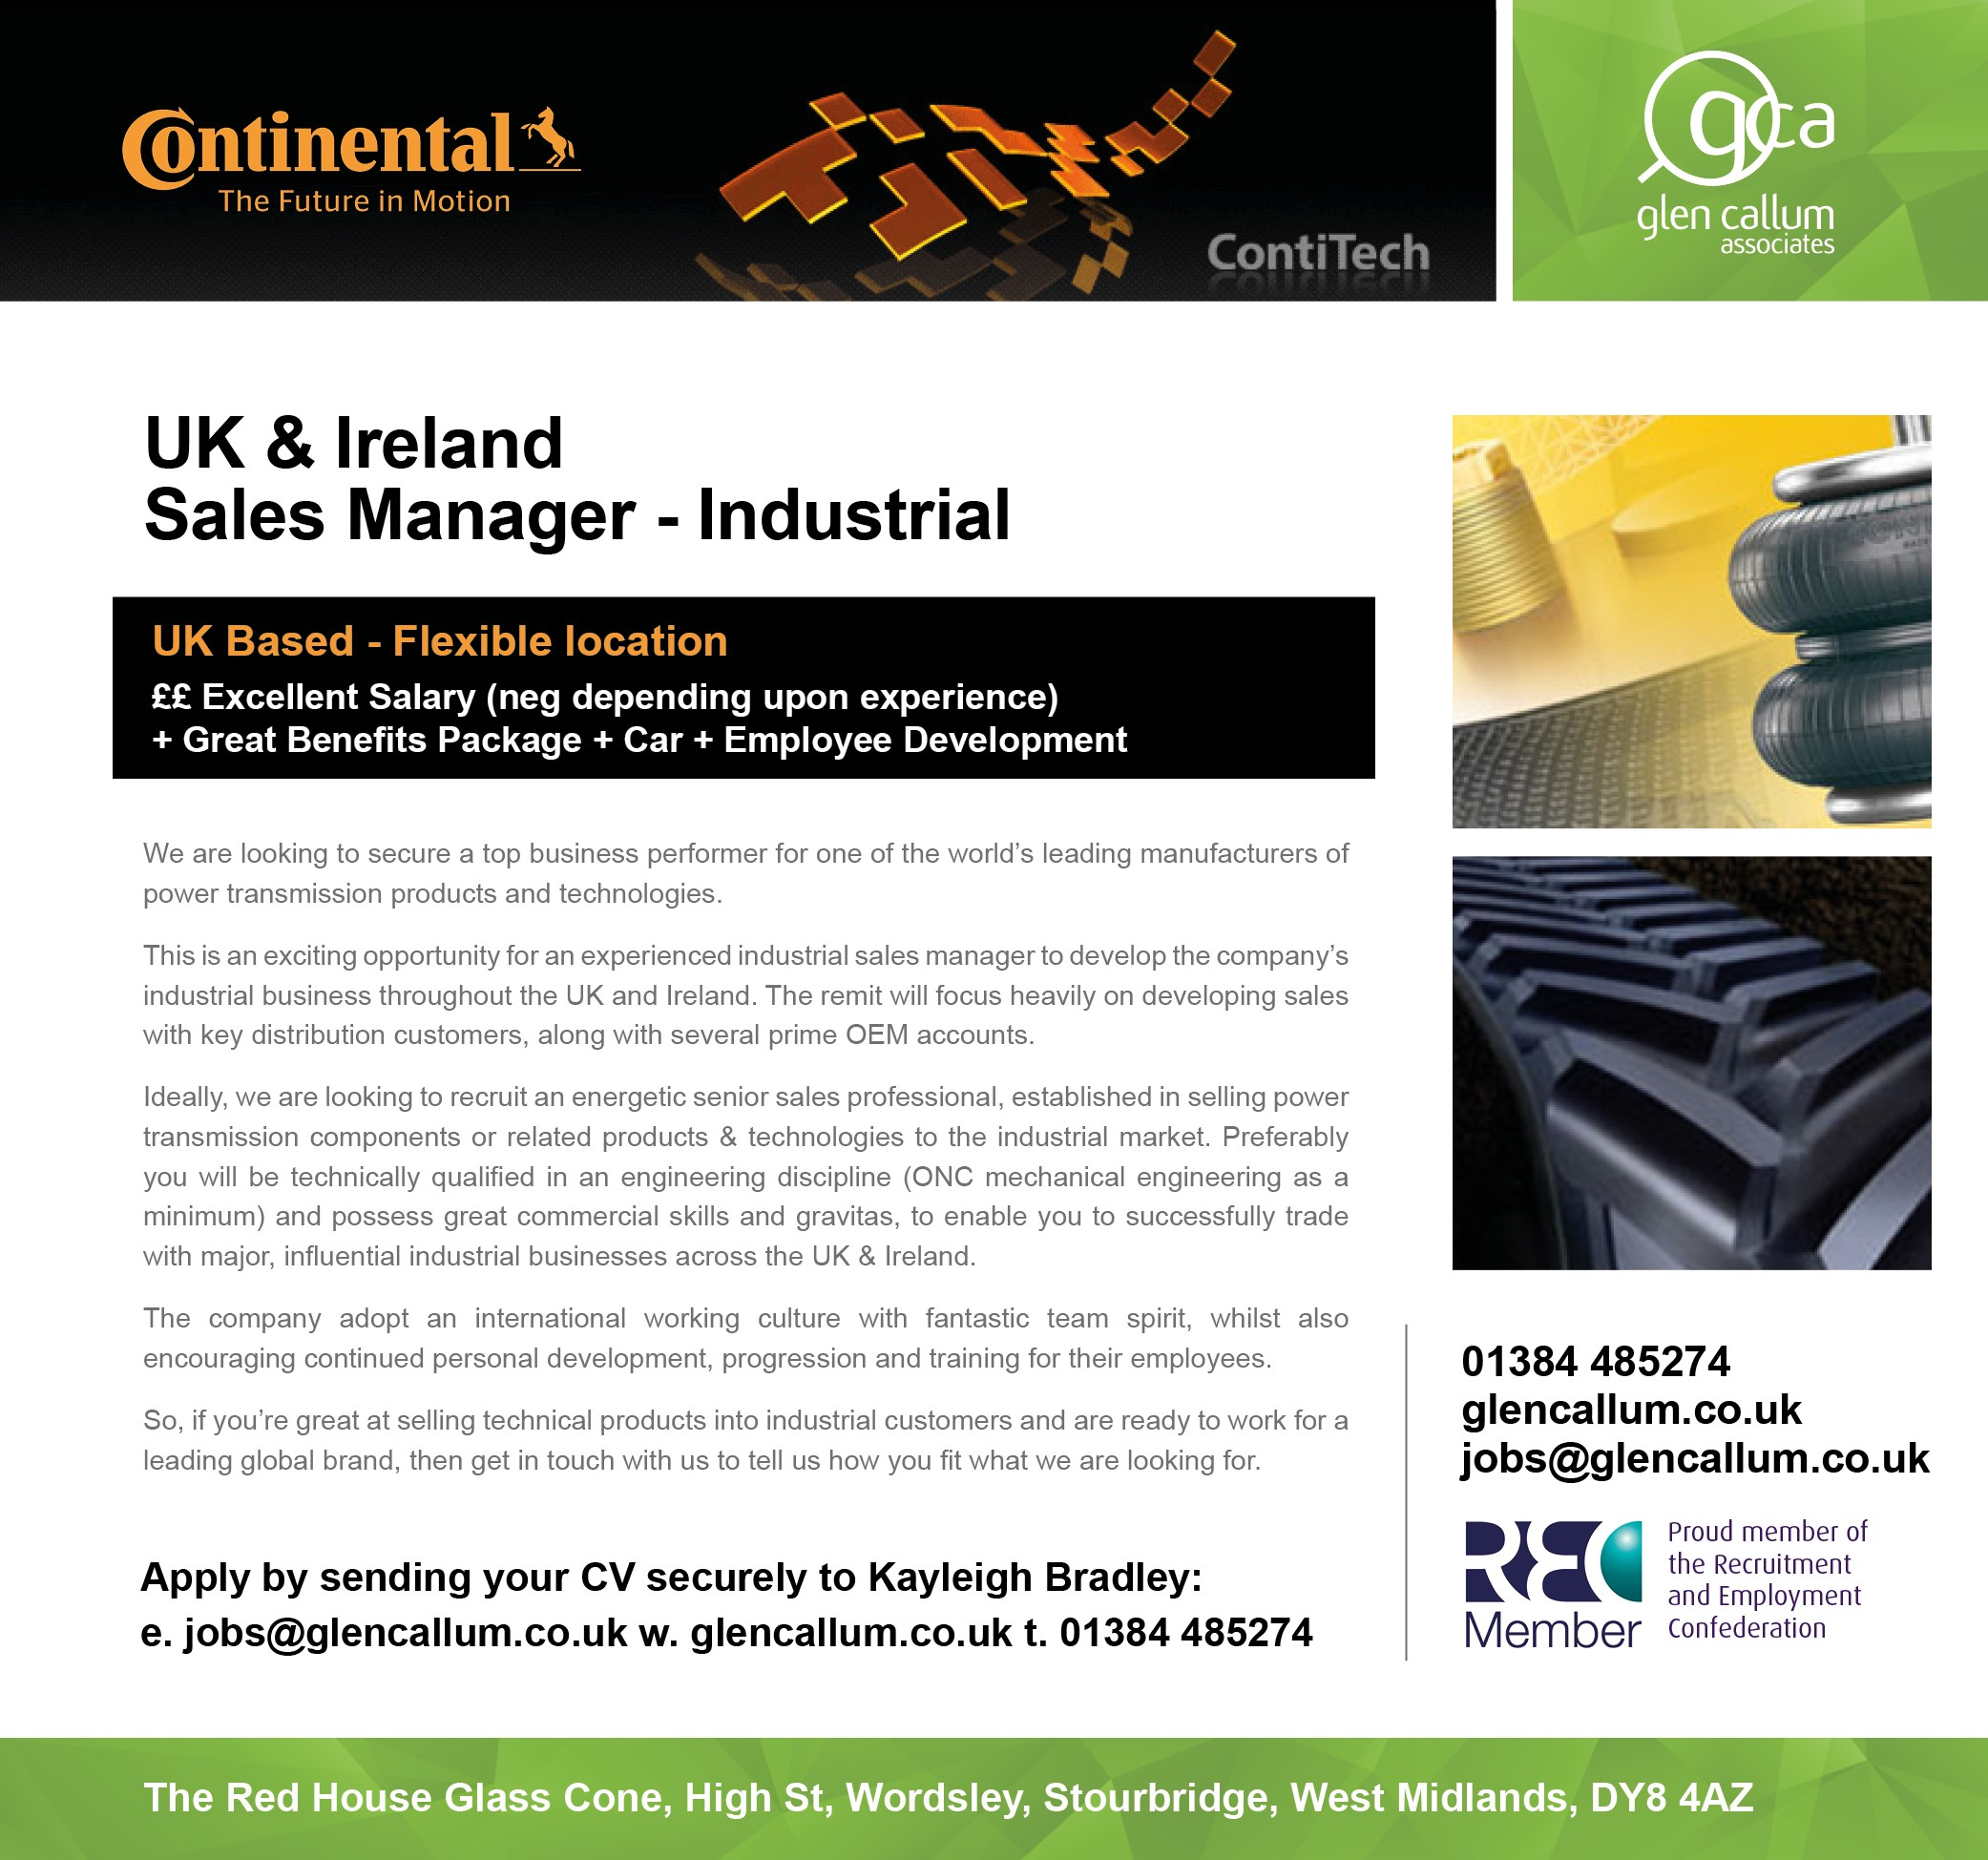 Glen Callum Associates Now Working With Continental